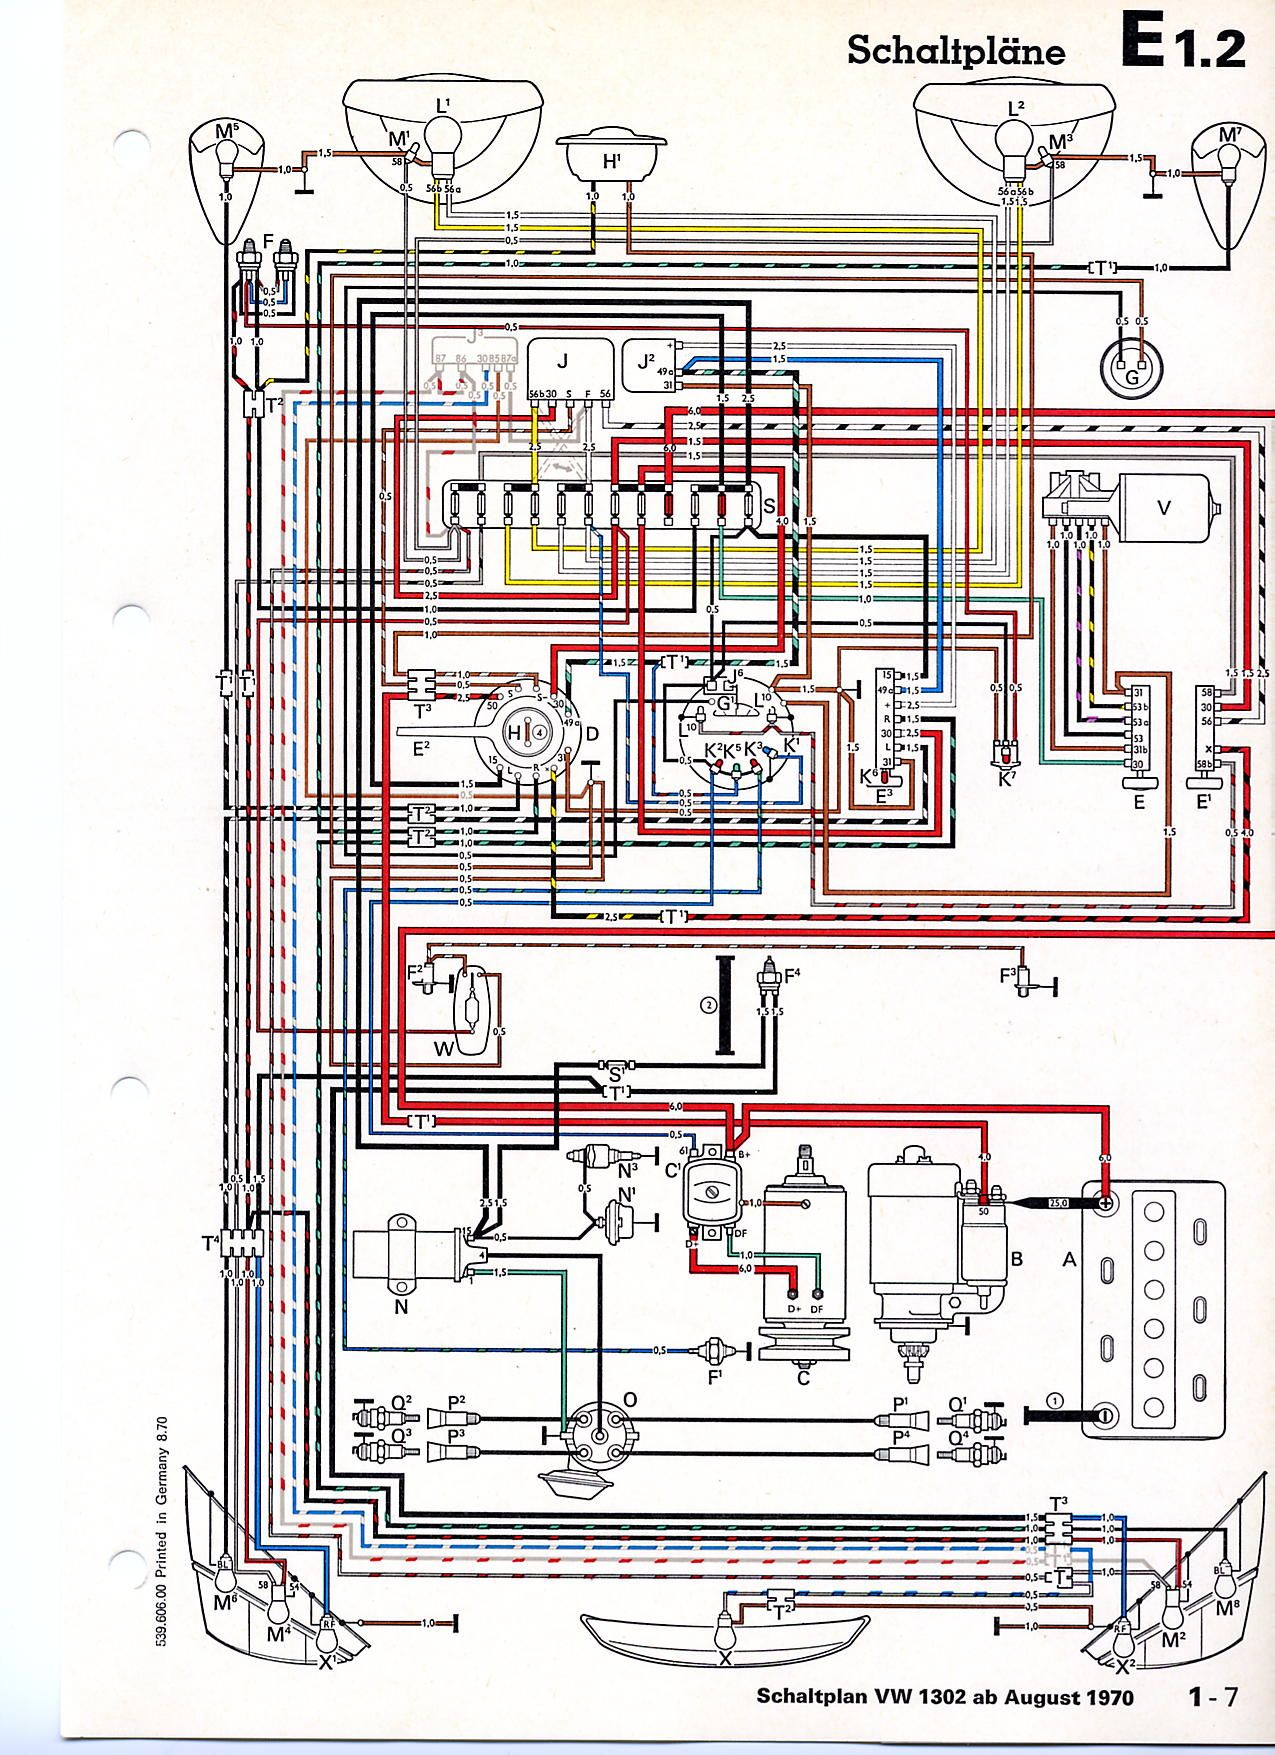 1974 vw thing wiring diagram wiring diagrams schematics 1974 VW Thing Wiring-Diagram and wiring diagram vw transporter the samba bay pride pinterest vw 1974 vw thing wiring diagram 10 at 1974 volkswagen beetle fuel system diagram at Volkswagen Thing Wiring Harness